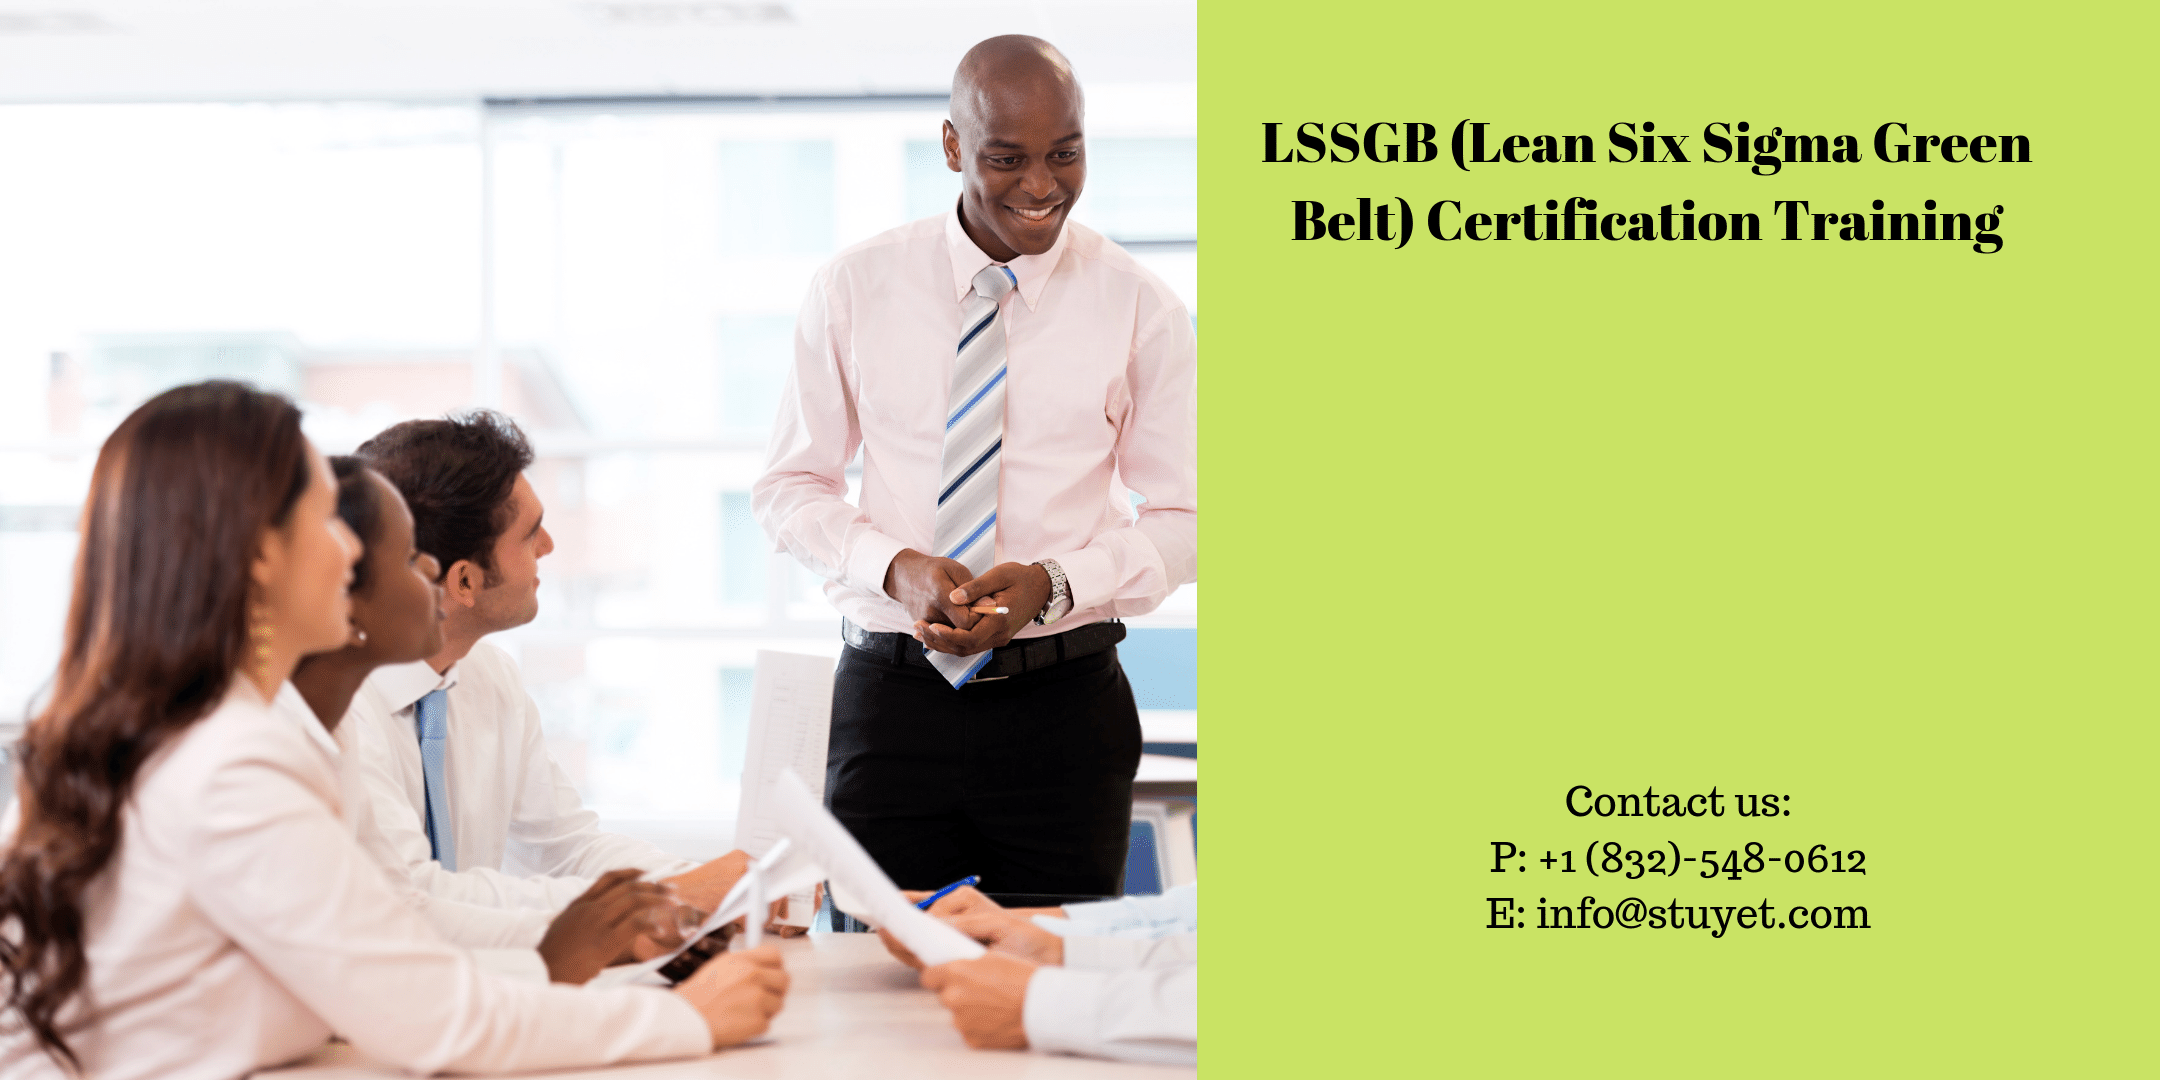 Lean Six Sigma Green Belt (LSSGB) Certification Training in Denver, CO